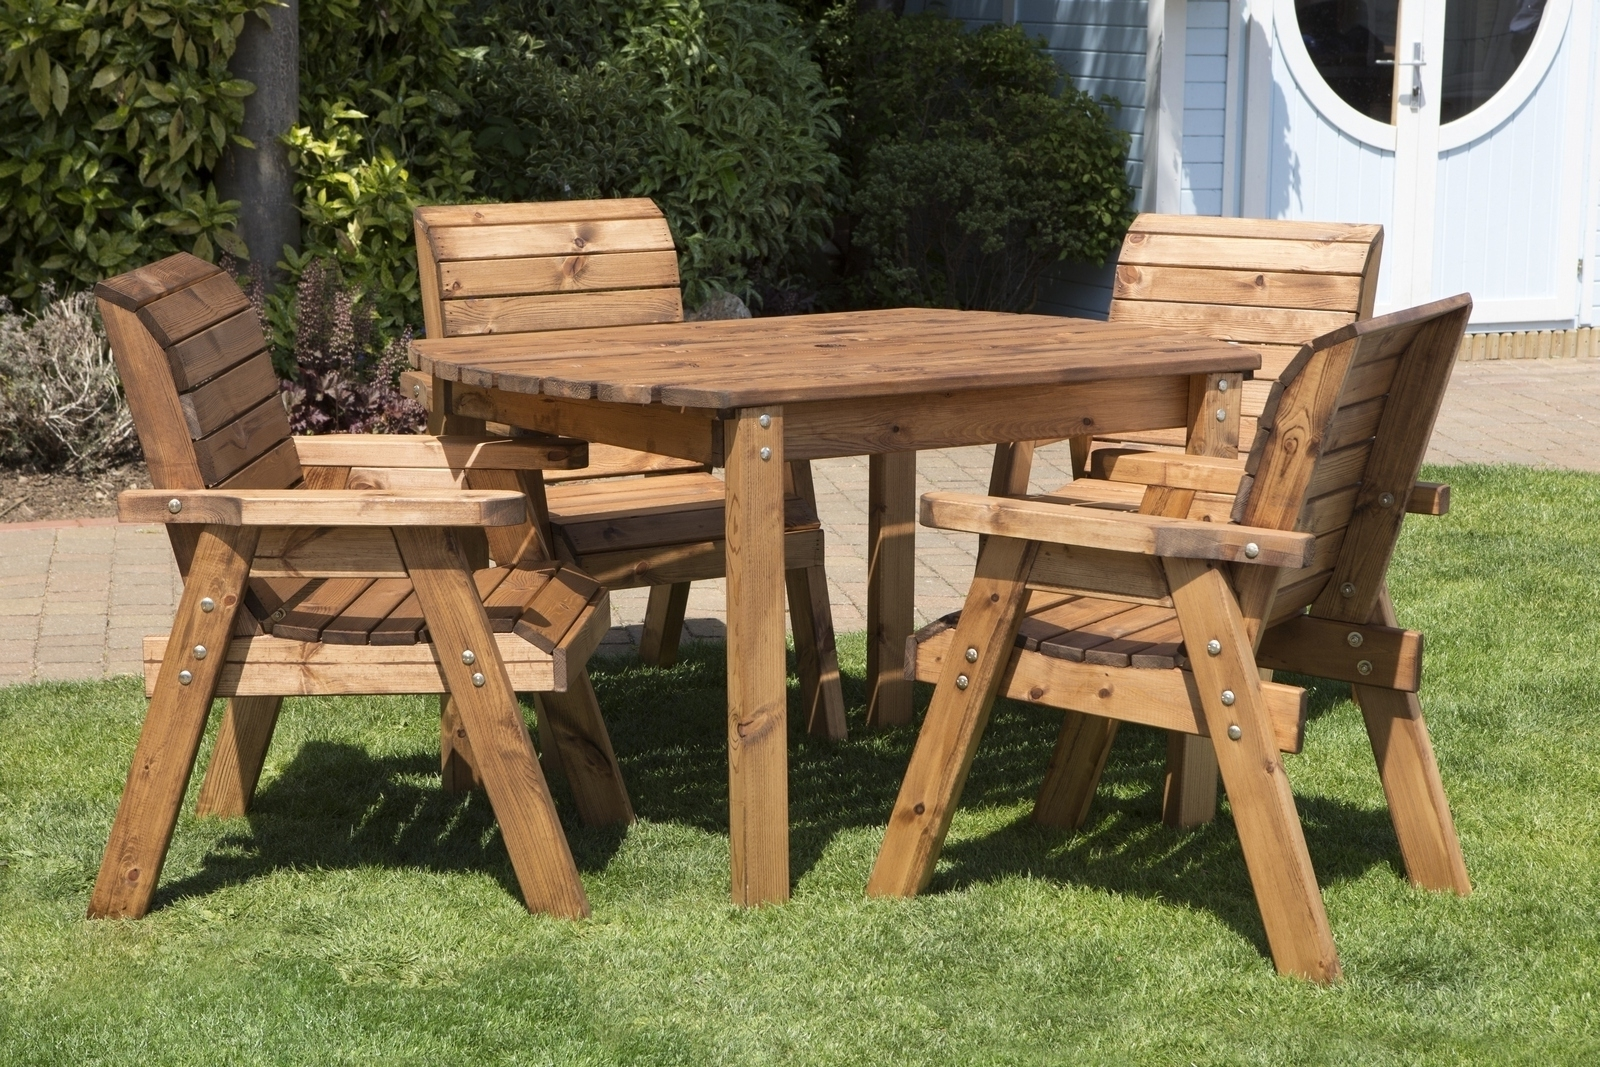 Uk Made Fully Assembled Heavy Duty Wooden Patio Garden Dining Set Throughout 2017 Garden Dining Tables (View 14 of 25)